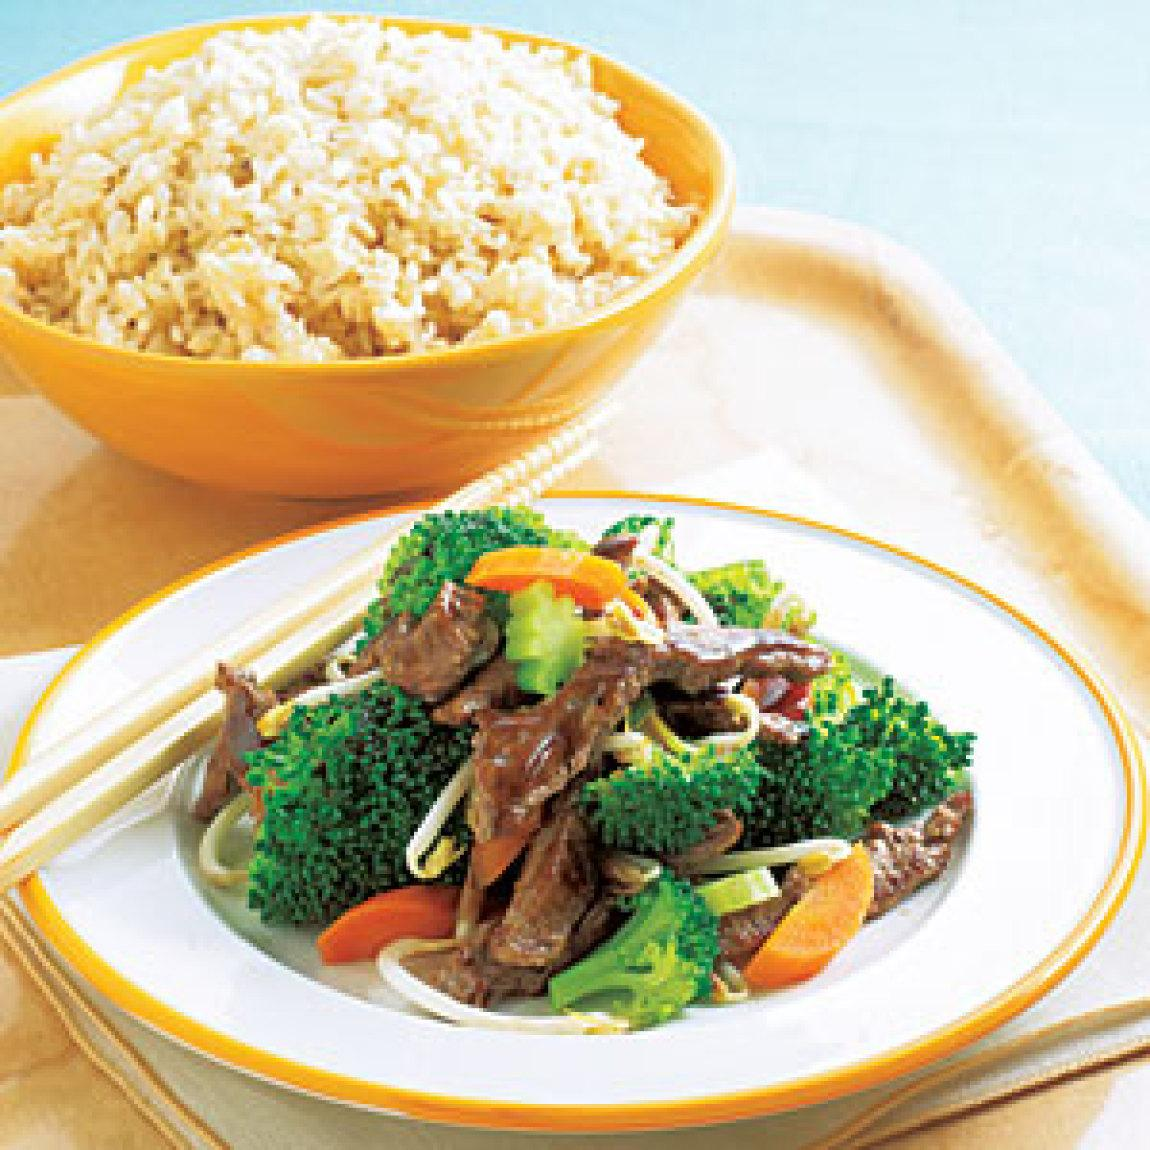 Beef and Broccoli Stir-fry Recipe 2 | Just A Pinch Recipes